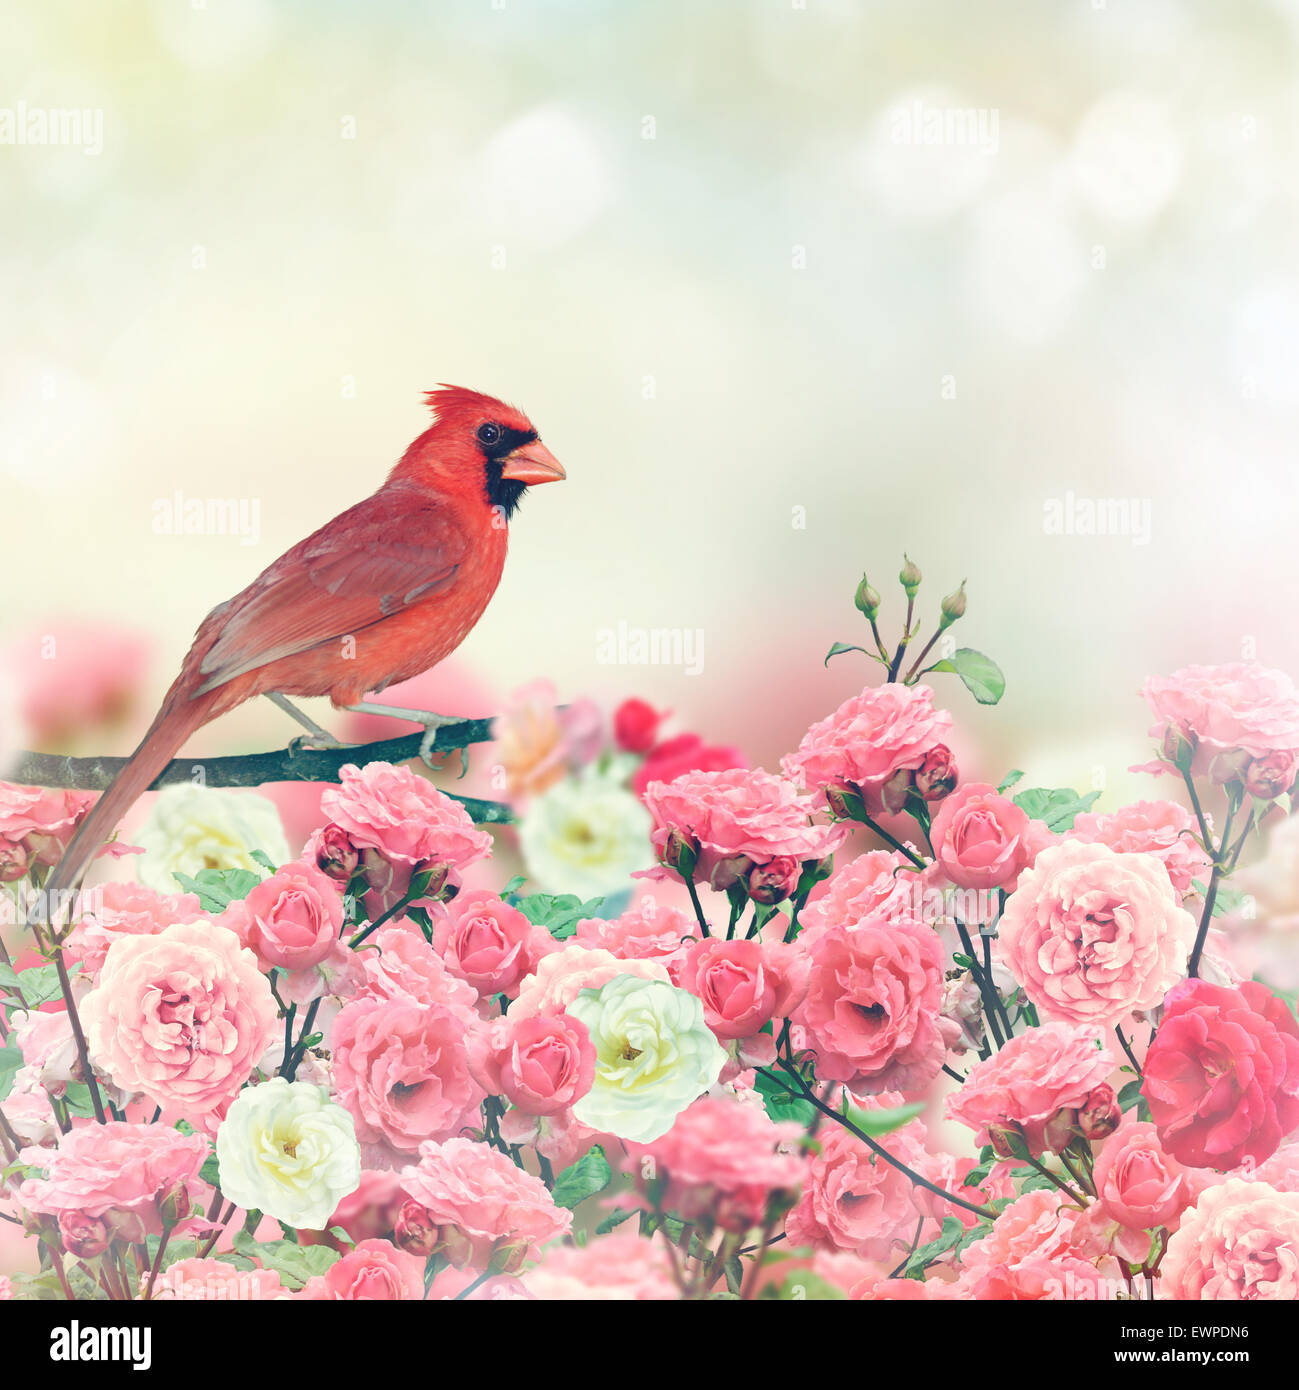 Red Cardinal Bird Perches In Rose Garden - Stock Image